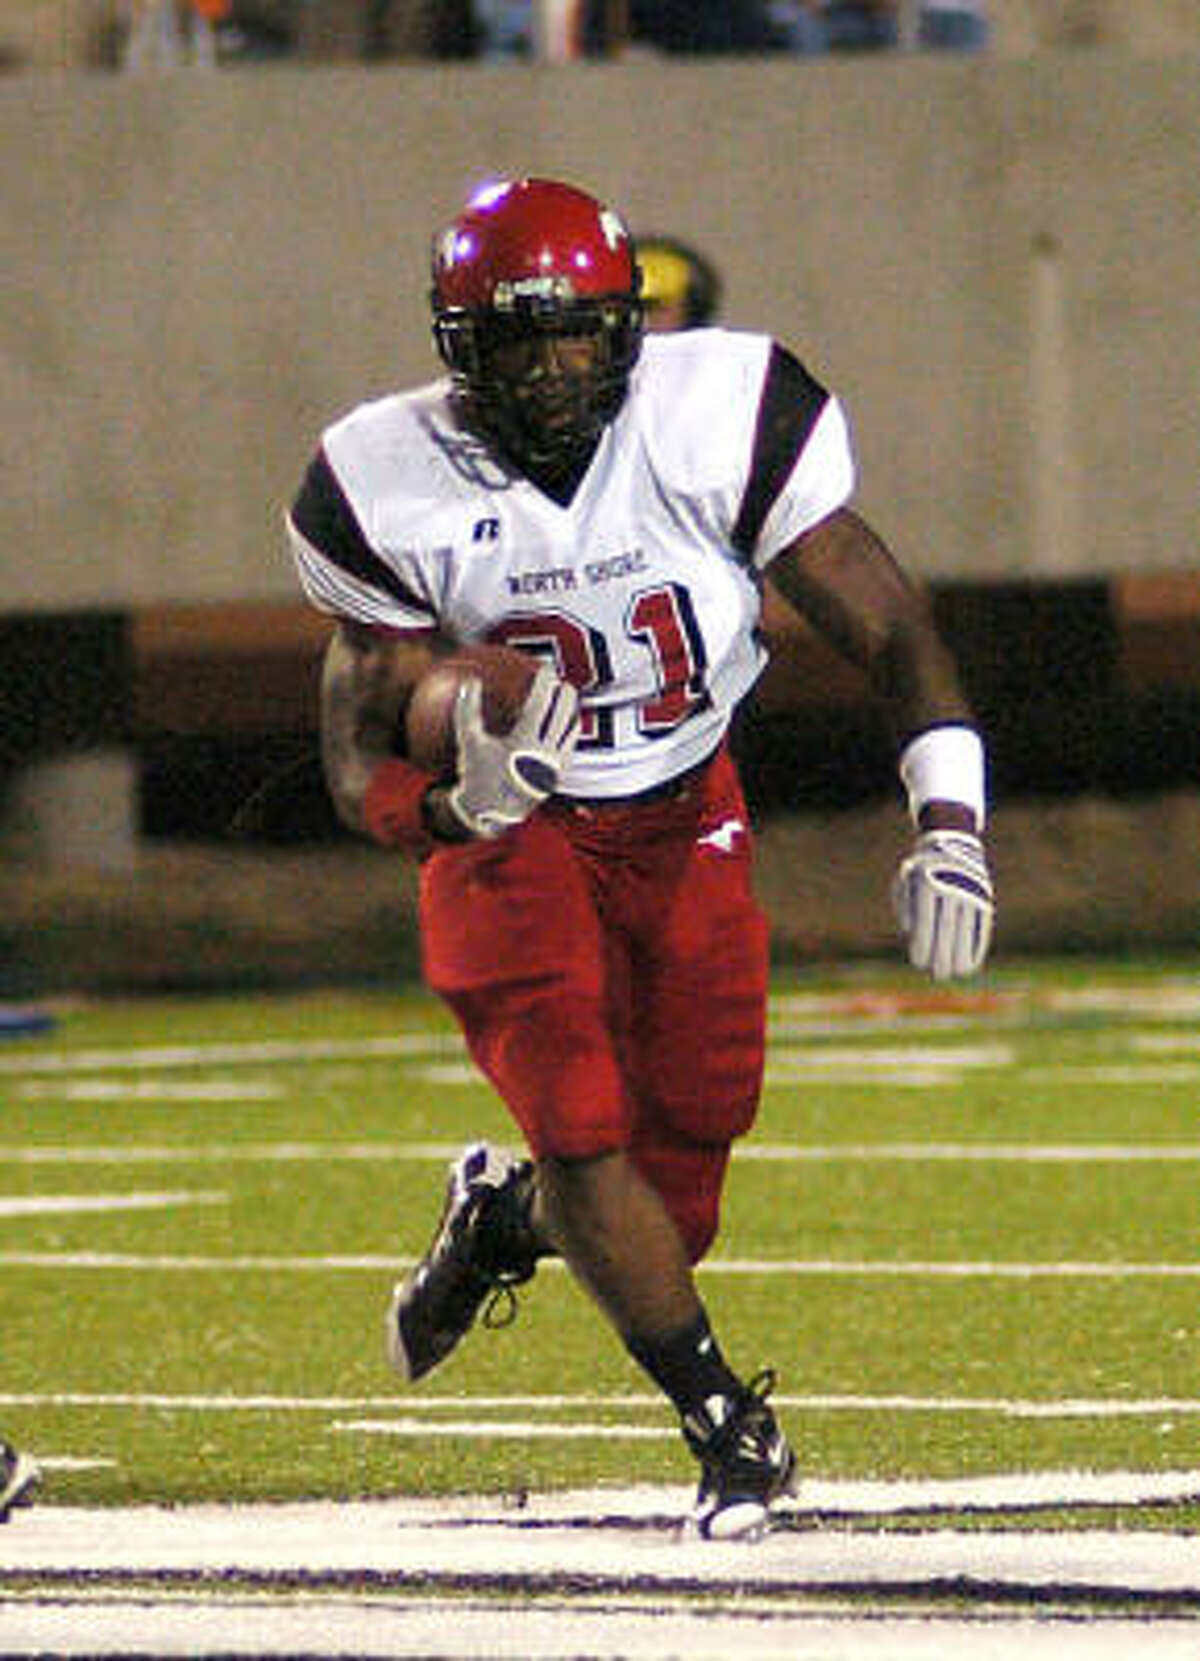 Tracy Woods, RB, North Shore If North Shore wants to beat Katy on Saturday, they must be able to run the ball. Woods (824 yards, 10 TDs in '08) will be the focal point.